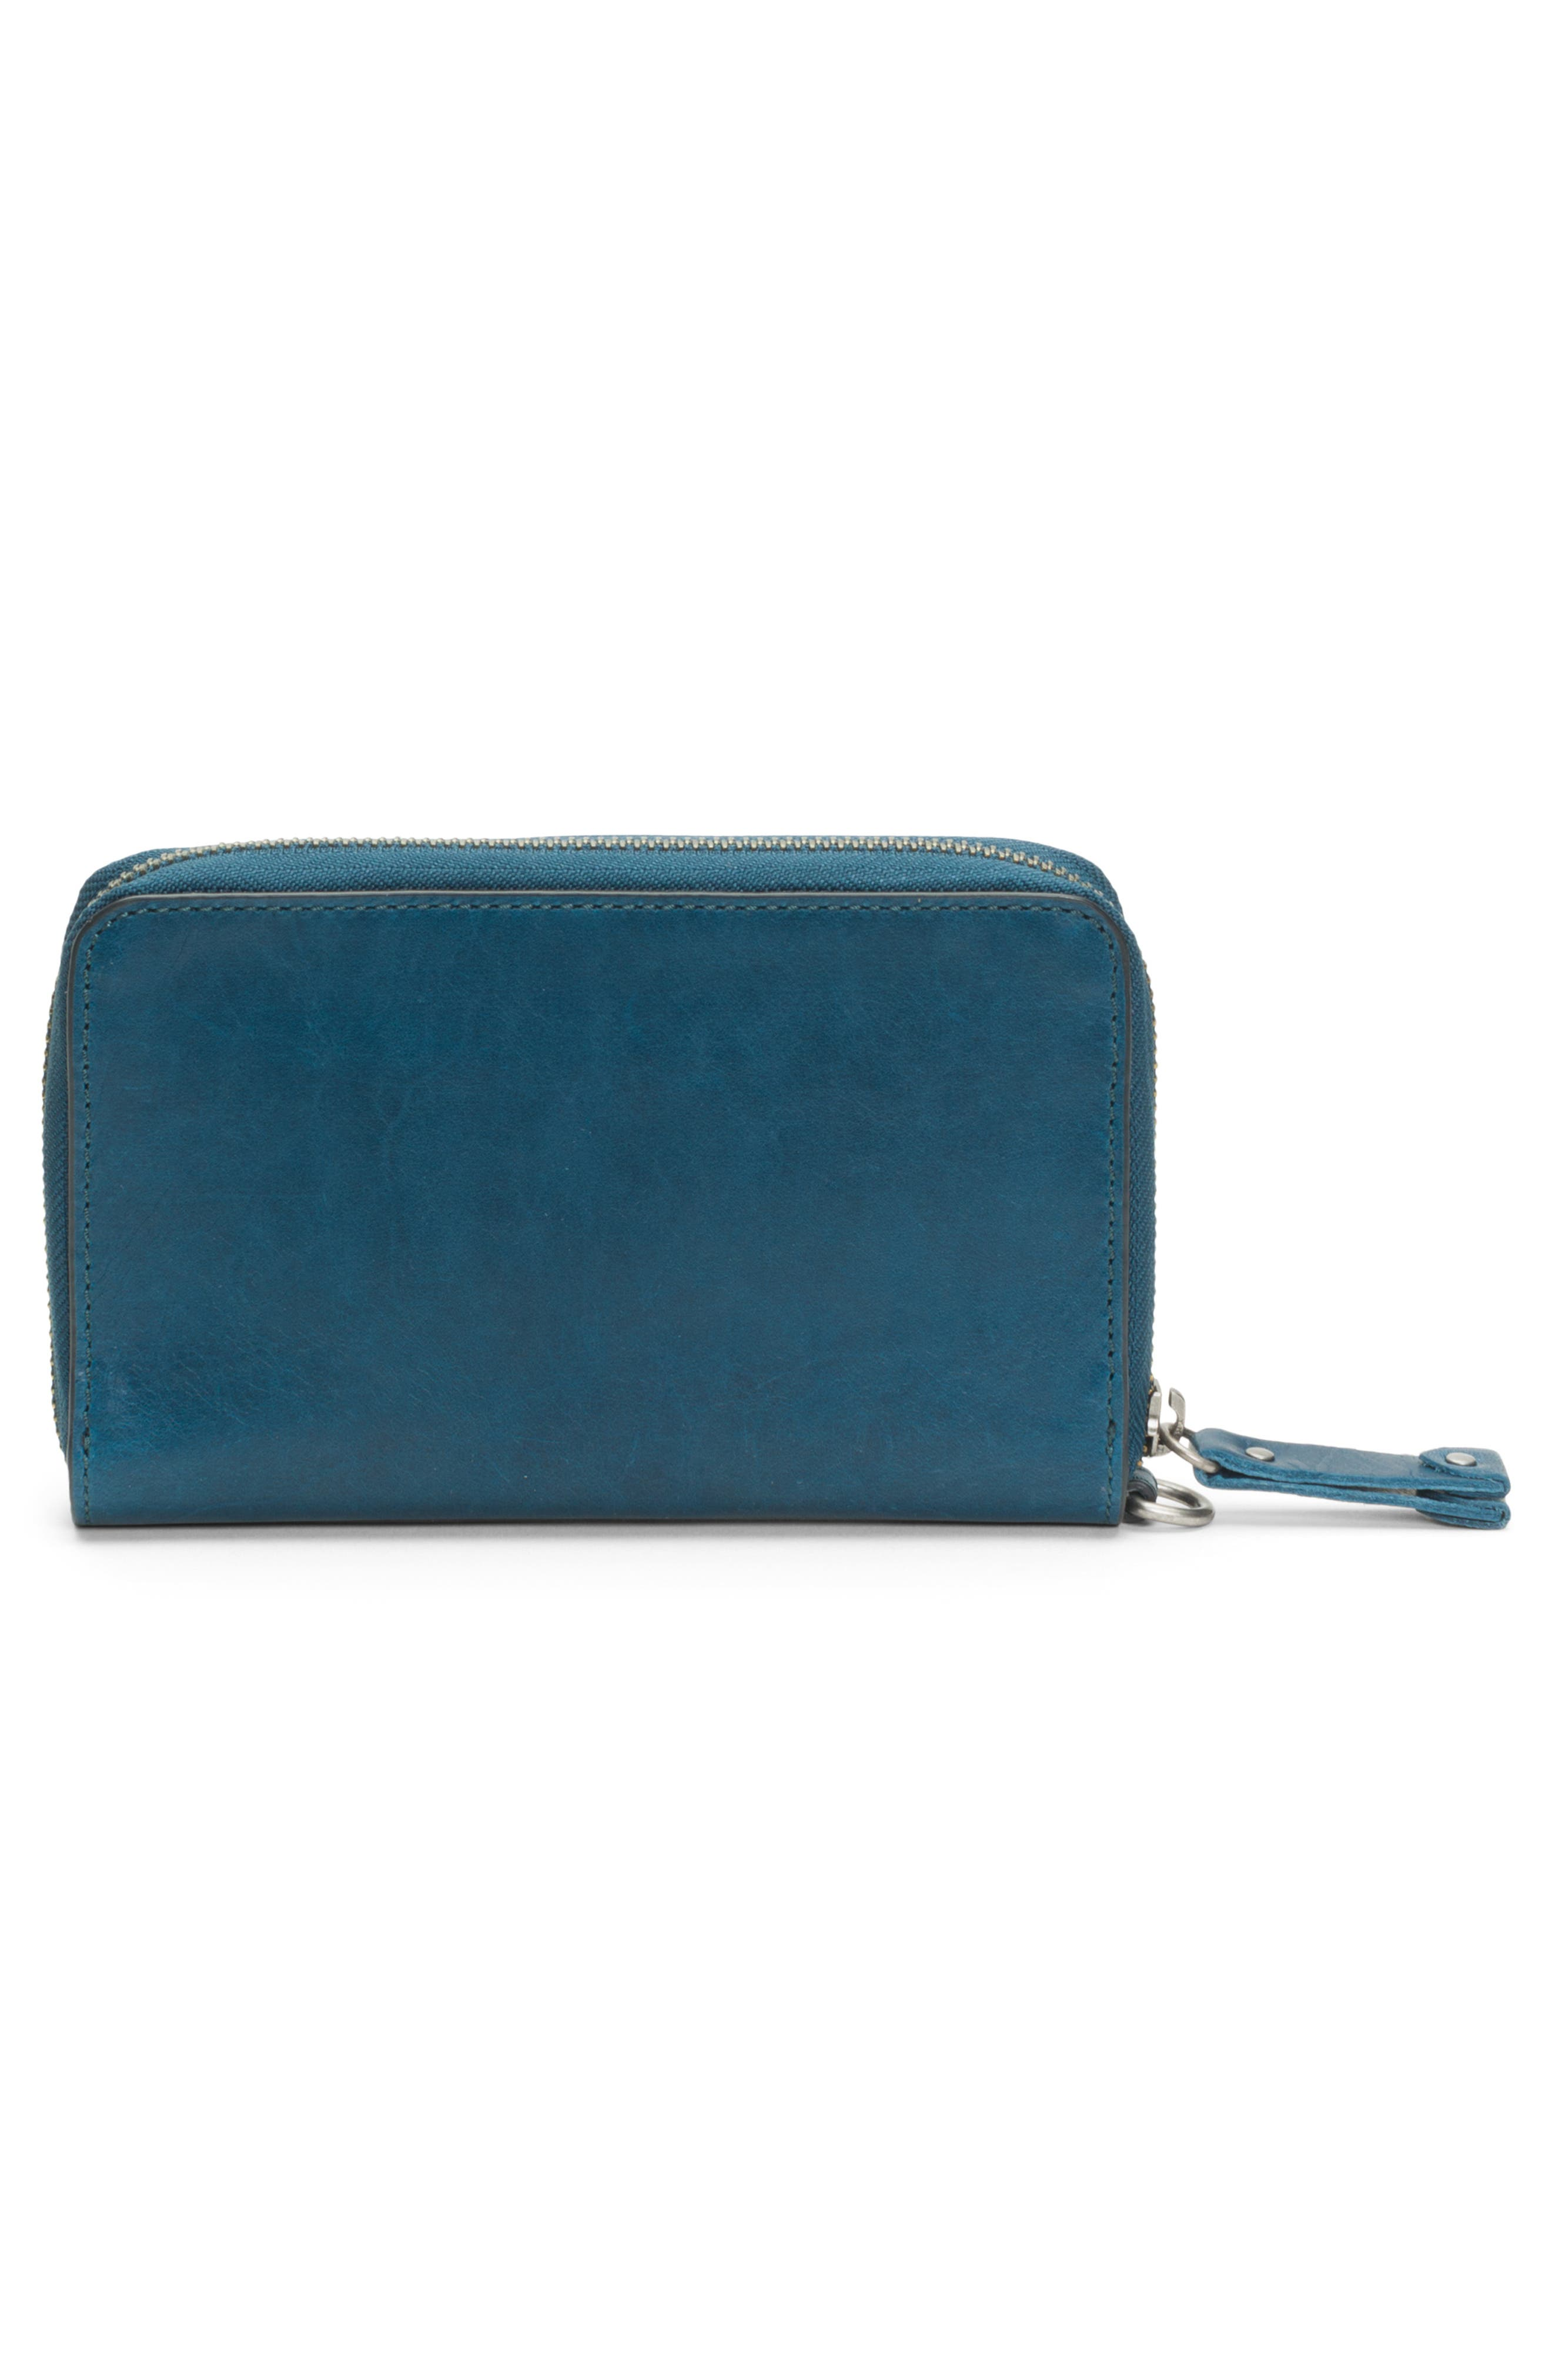 Melissa Large Leather Phone Wallet,                             Alternate thumbnail 3, color,                             PEACOCK